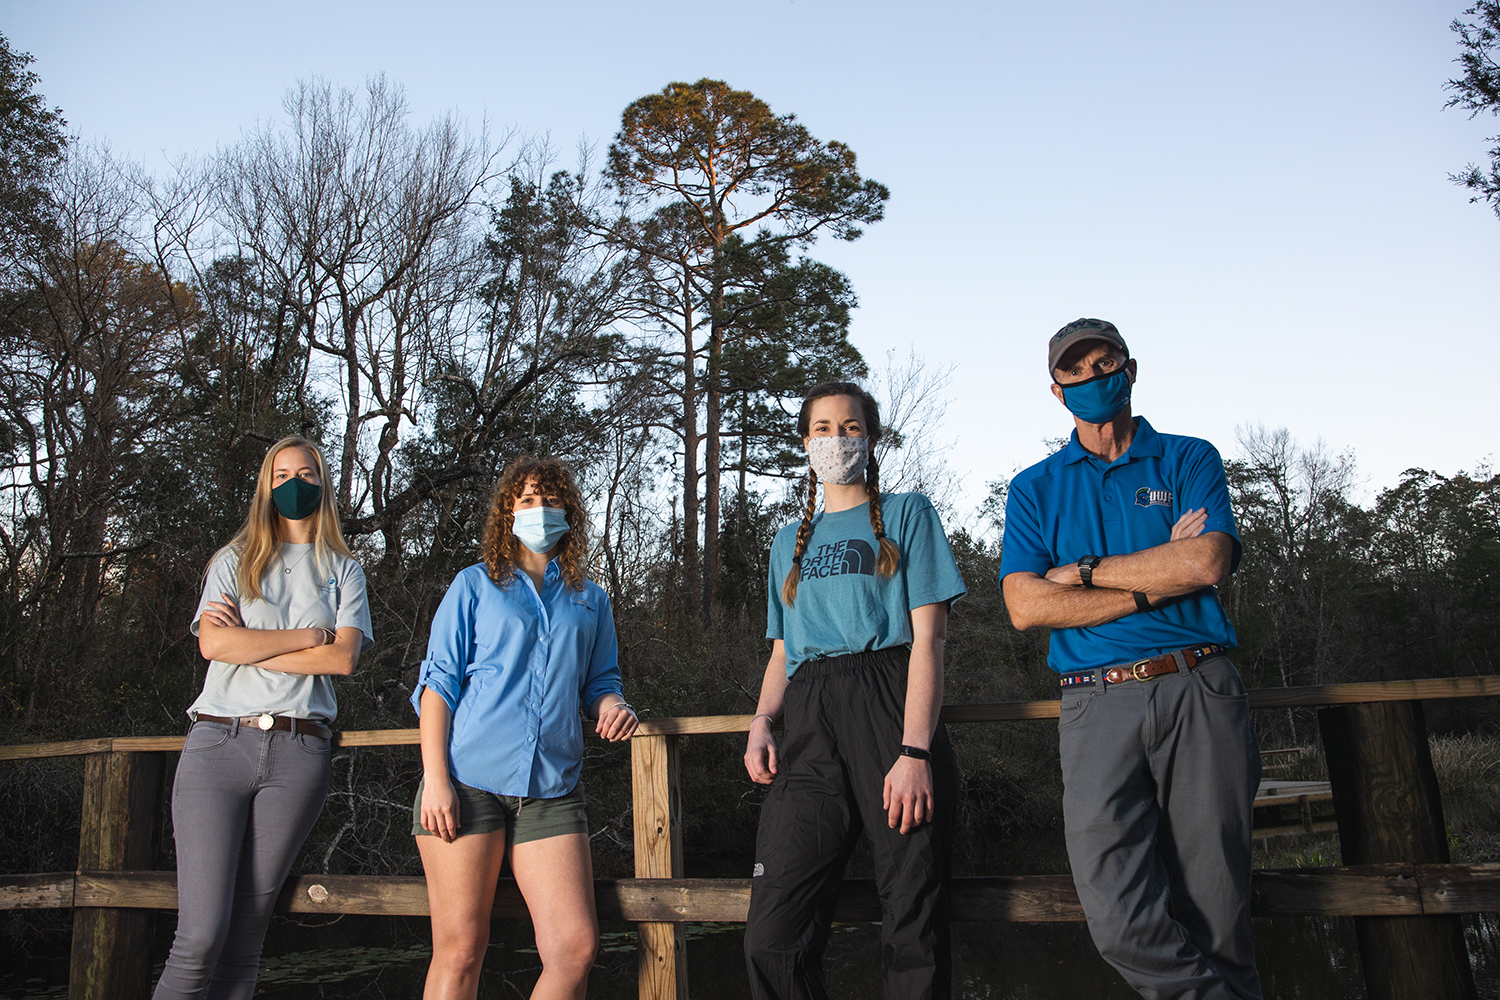 Selina Detzel, Katelyn Bray and Emily Major, are UWF biology students who work with Dr. Frank Gilliam in studies of the campus ecosystem, with focuses on longleaf pine trees and gopher tortoises.